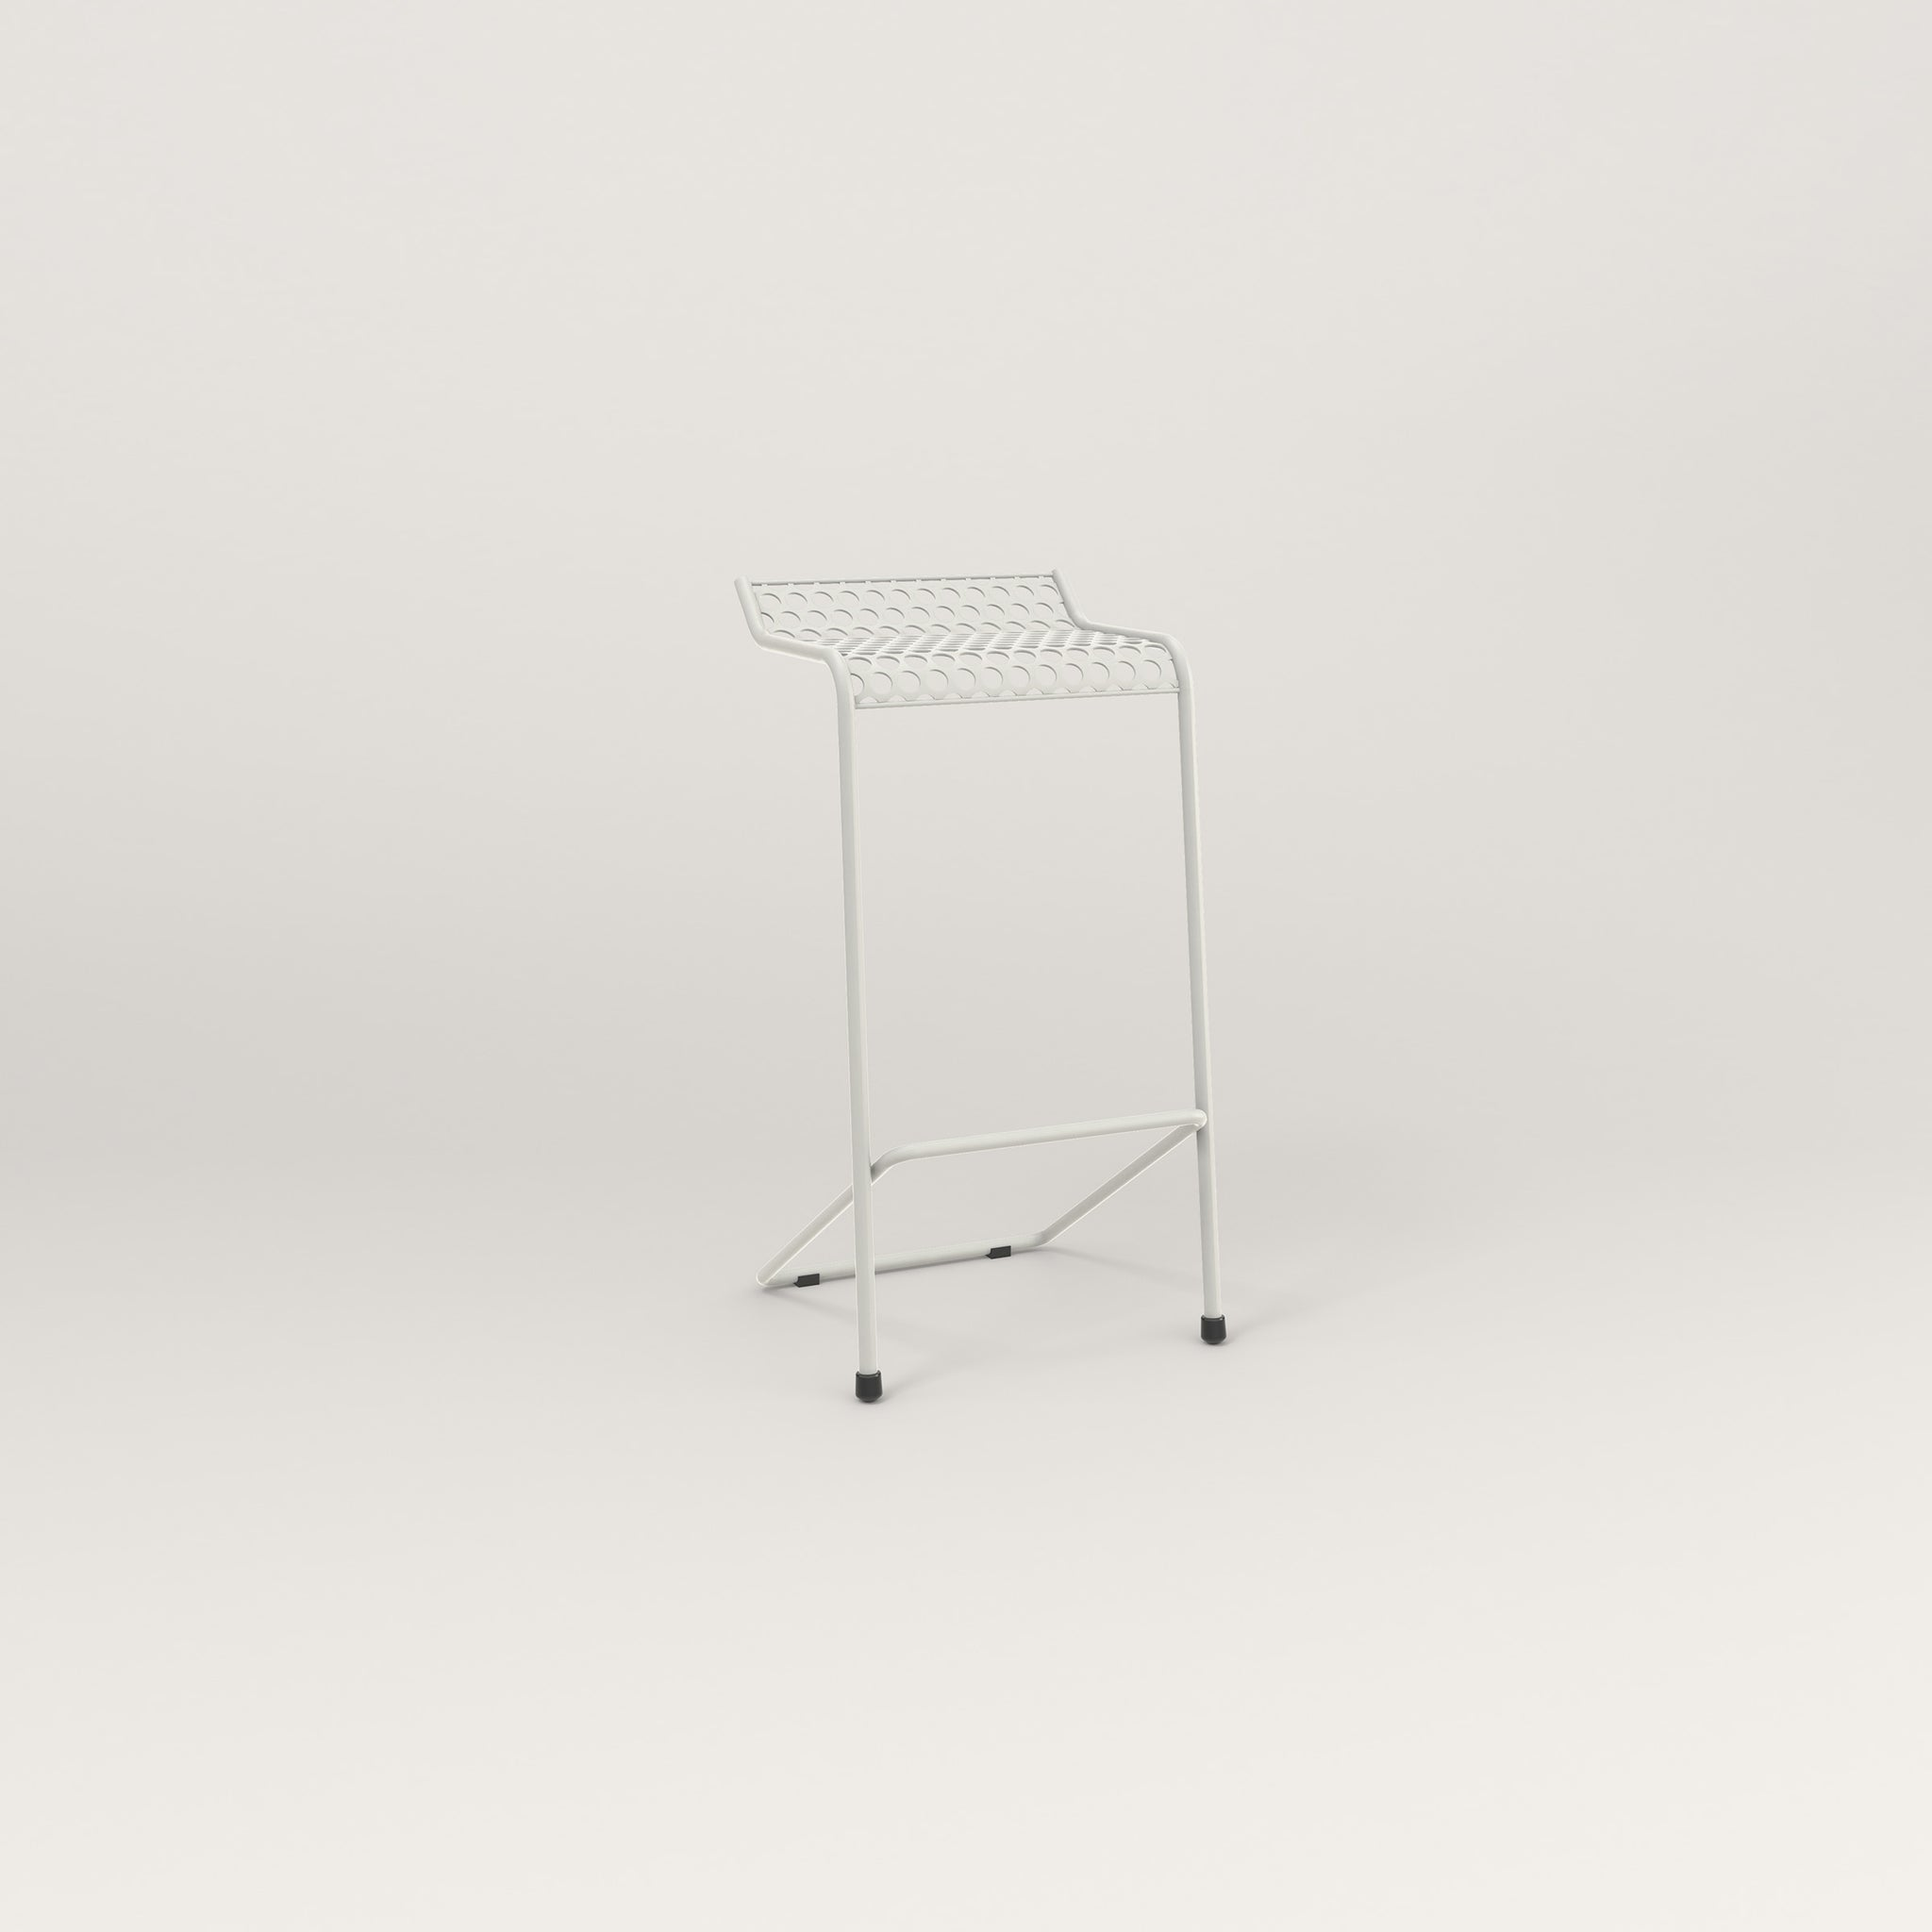 RAD Signature Bar Stool in perforated steel and white powder coat.